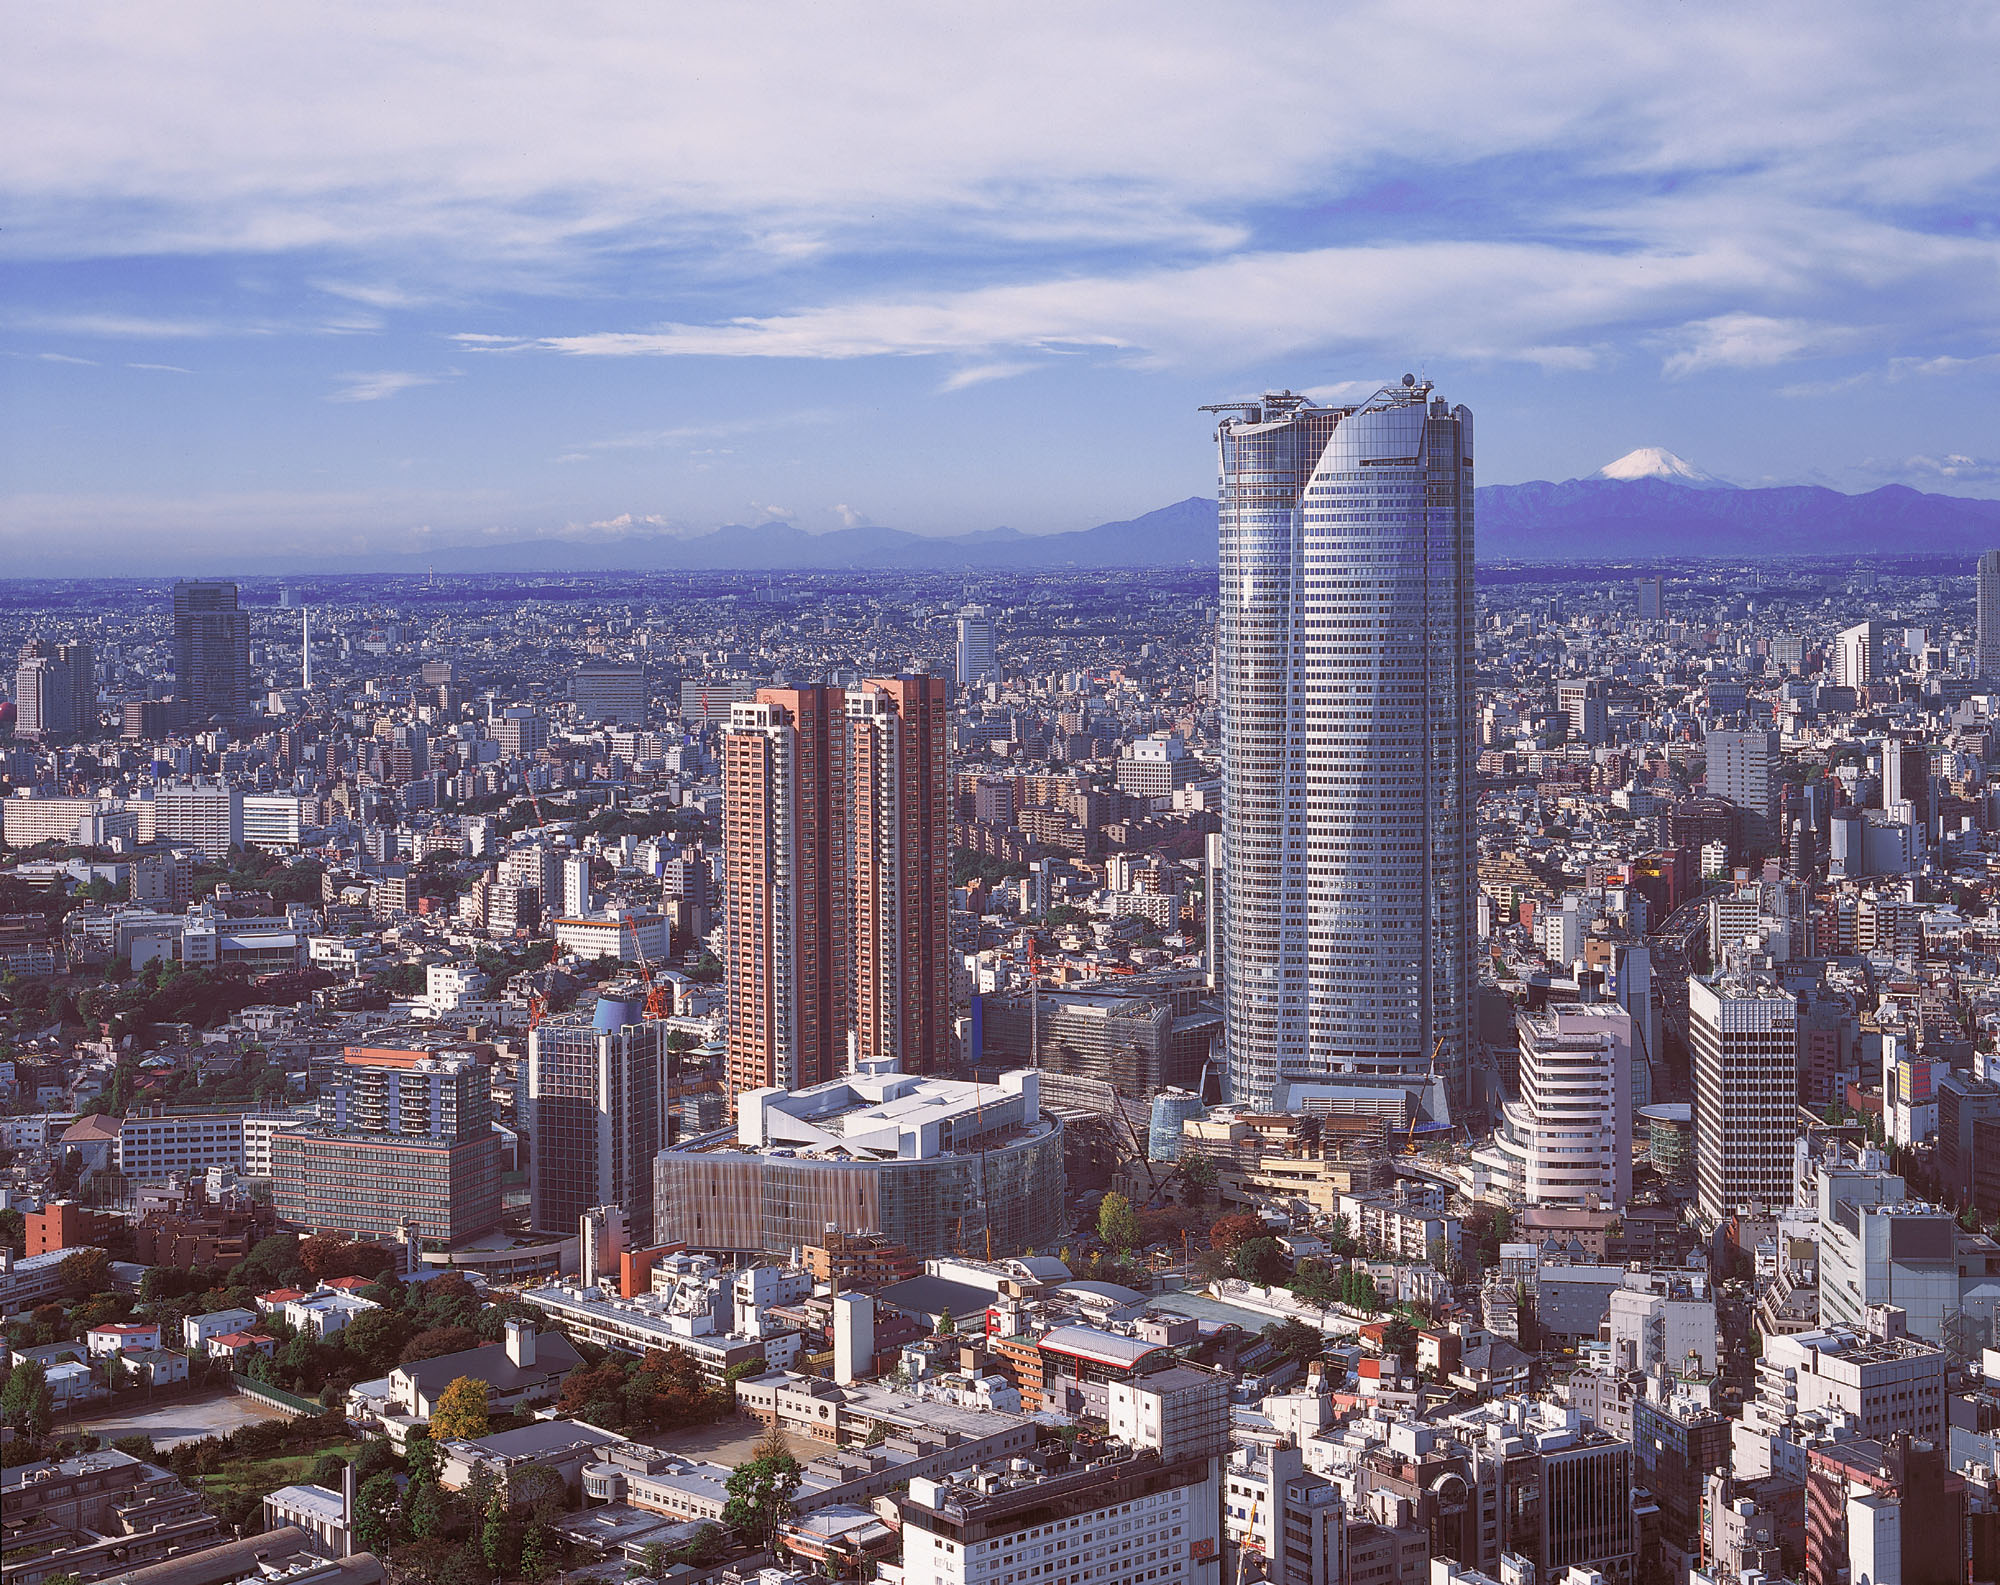 Roppongi Hills Gets Love On Its 10th Anniversary The